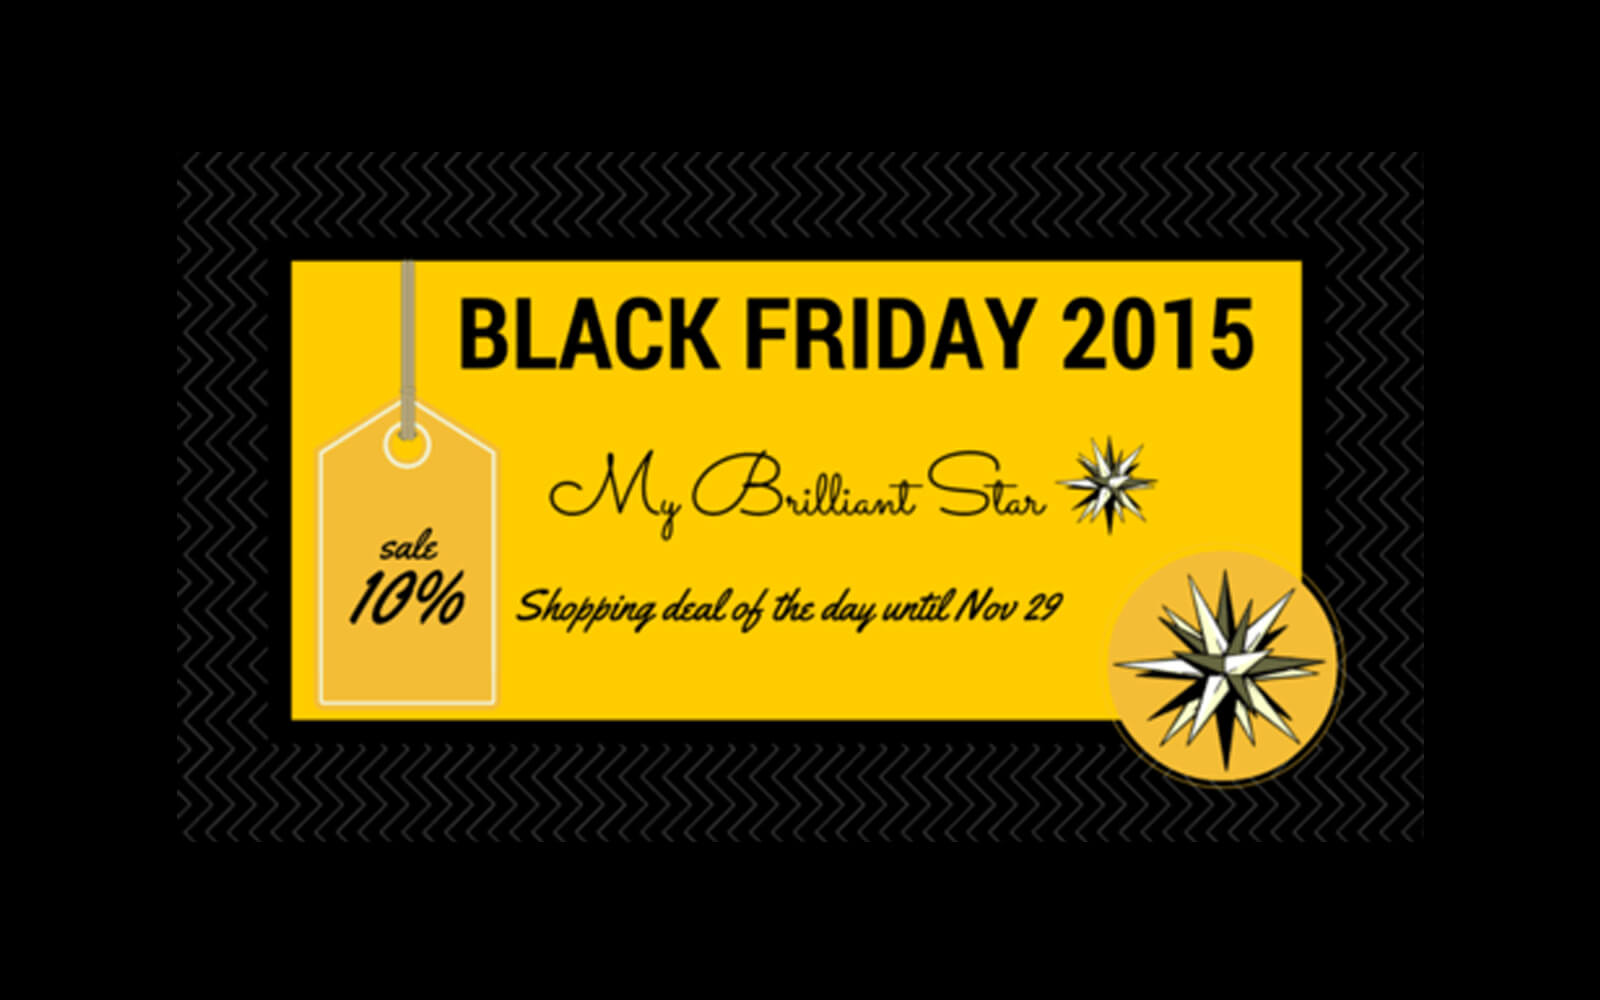 Black Friday offer MyBrilliantStar